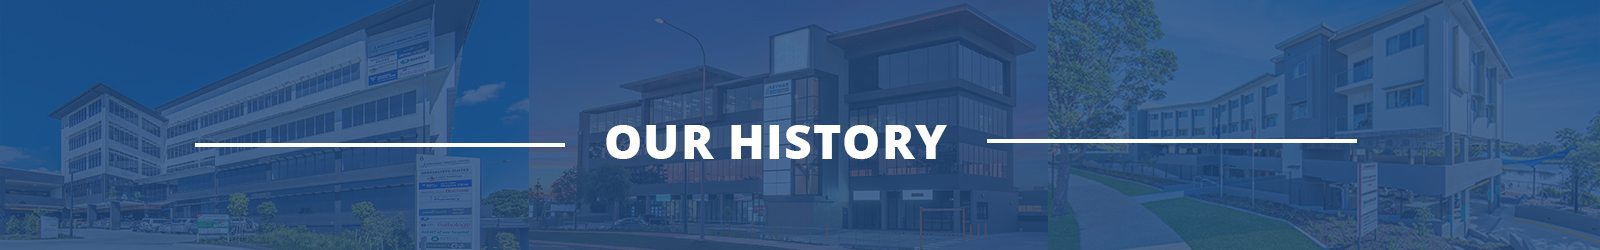 Our-history-banner